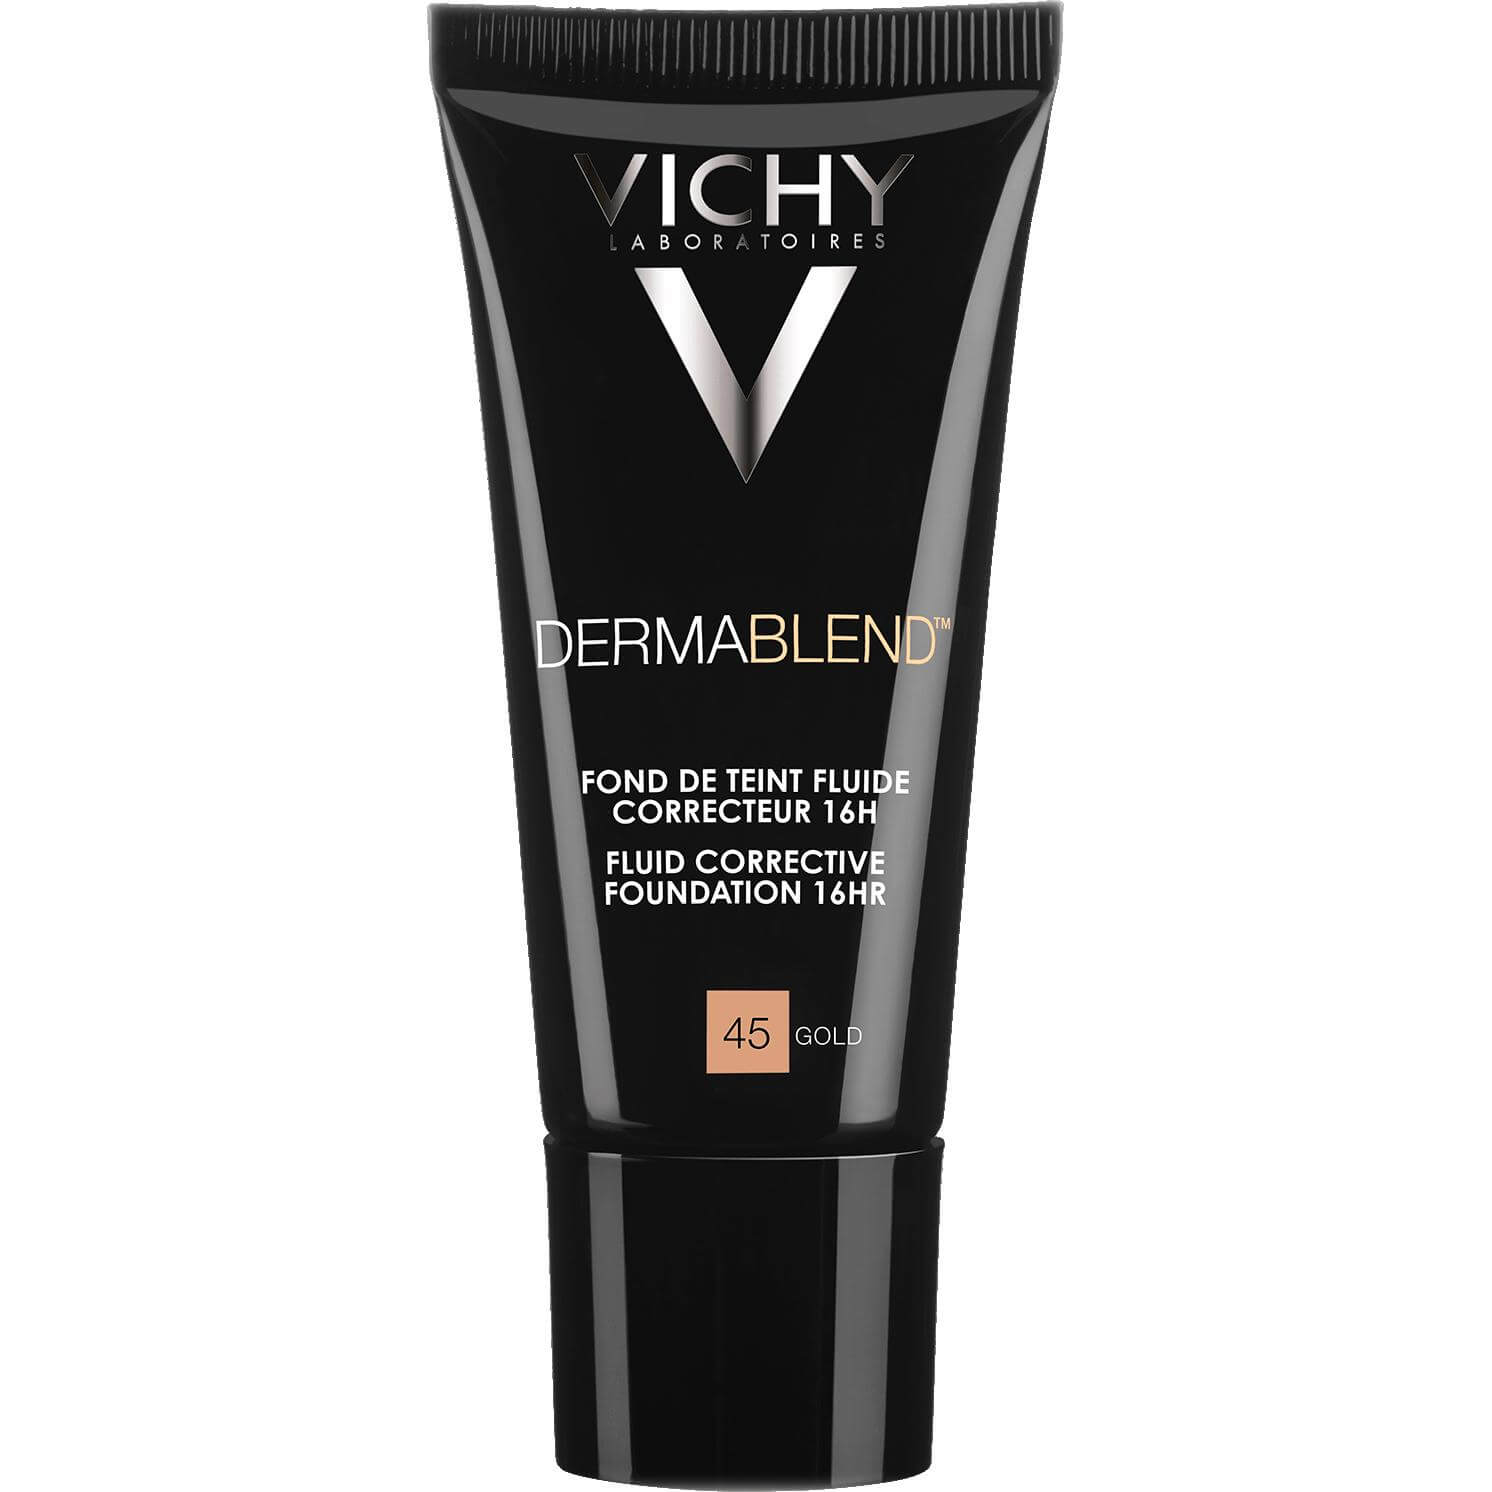 Vichy Dermablend Fdt Correcteur Fluide Spf35 Διορθωτικό Make-Up με Λεπτόρρευστη Υφή 30ml – 25 nude